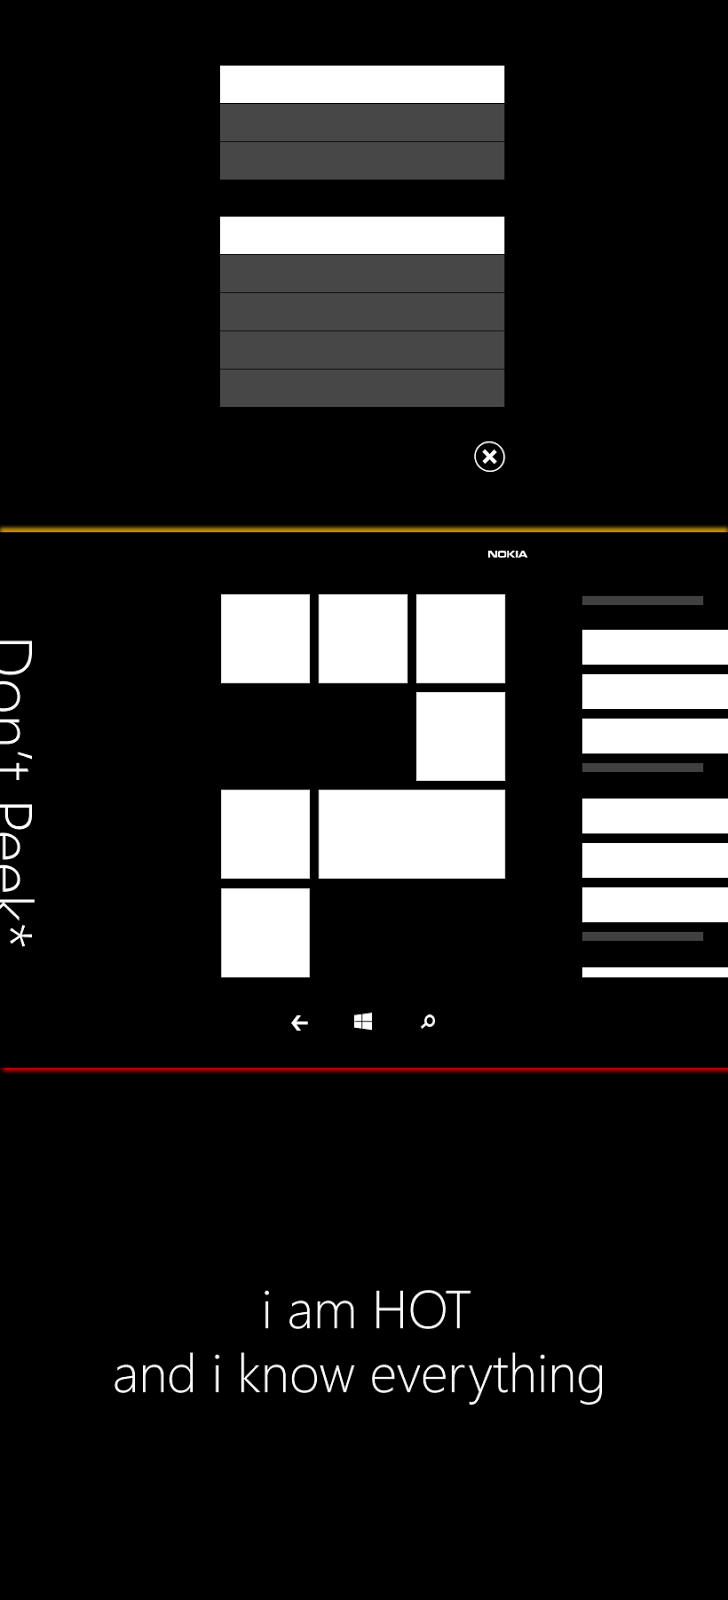 This image is trying to show what swiping up/down and left/right will do in WP 8.1. Swiping to the left ( Don't Peek*), for example, transitions to a 'Me, quick share, settings personalize', according to the leak